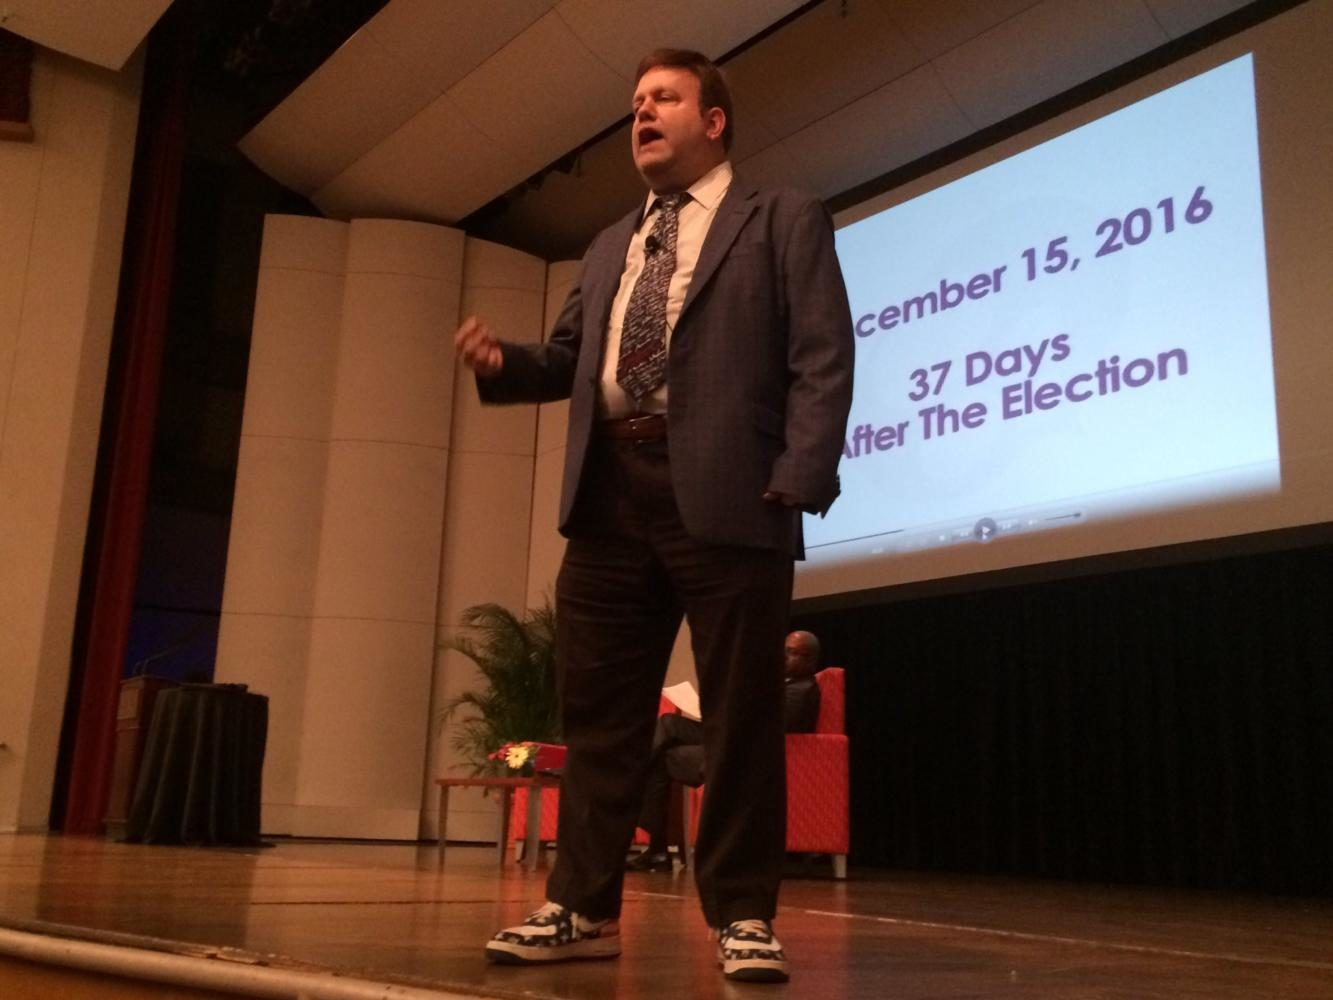 Frank+Luntz+speaks+at+the+Ed+Renwick+Lecture+Series+in+Roussel+Hall+on+April+27.+Luntz+claimed+anger+as+the+defining+mood+of+the+American+electorate.+Photo+credit%3A+Nick+Reimann